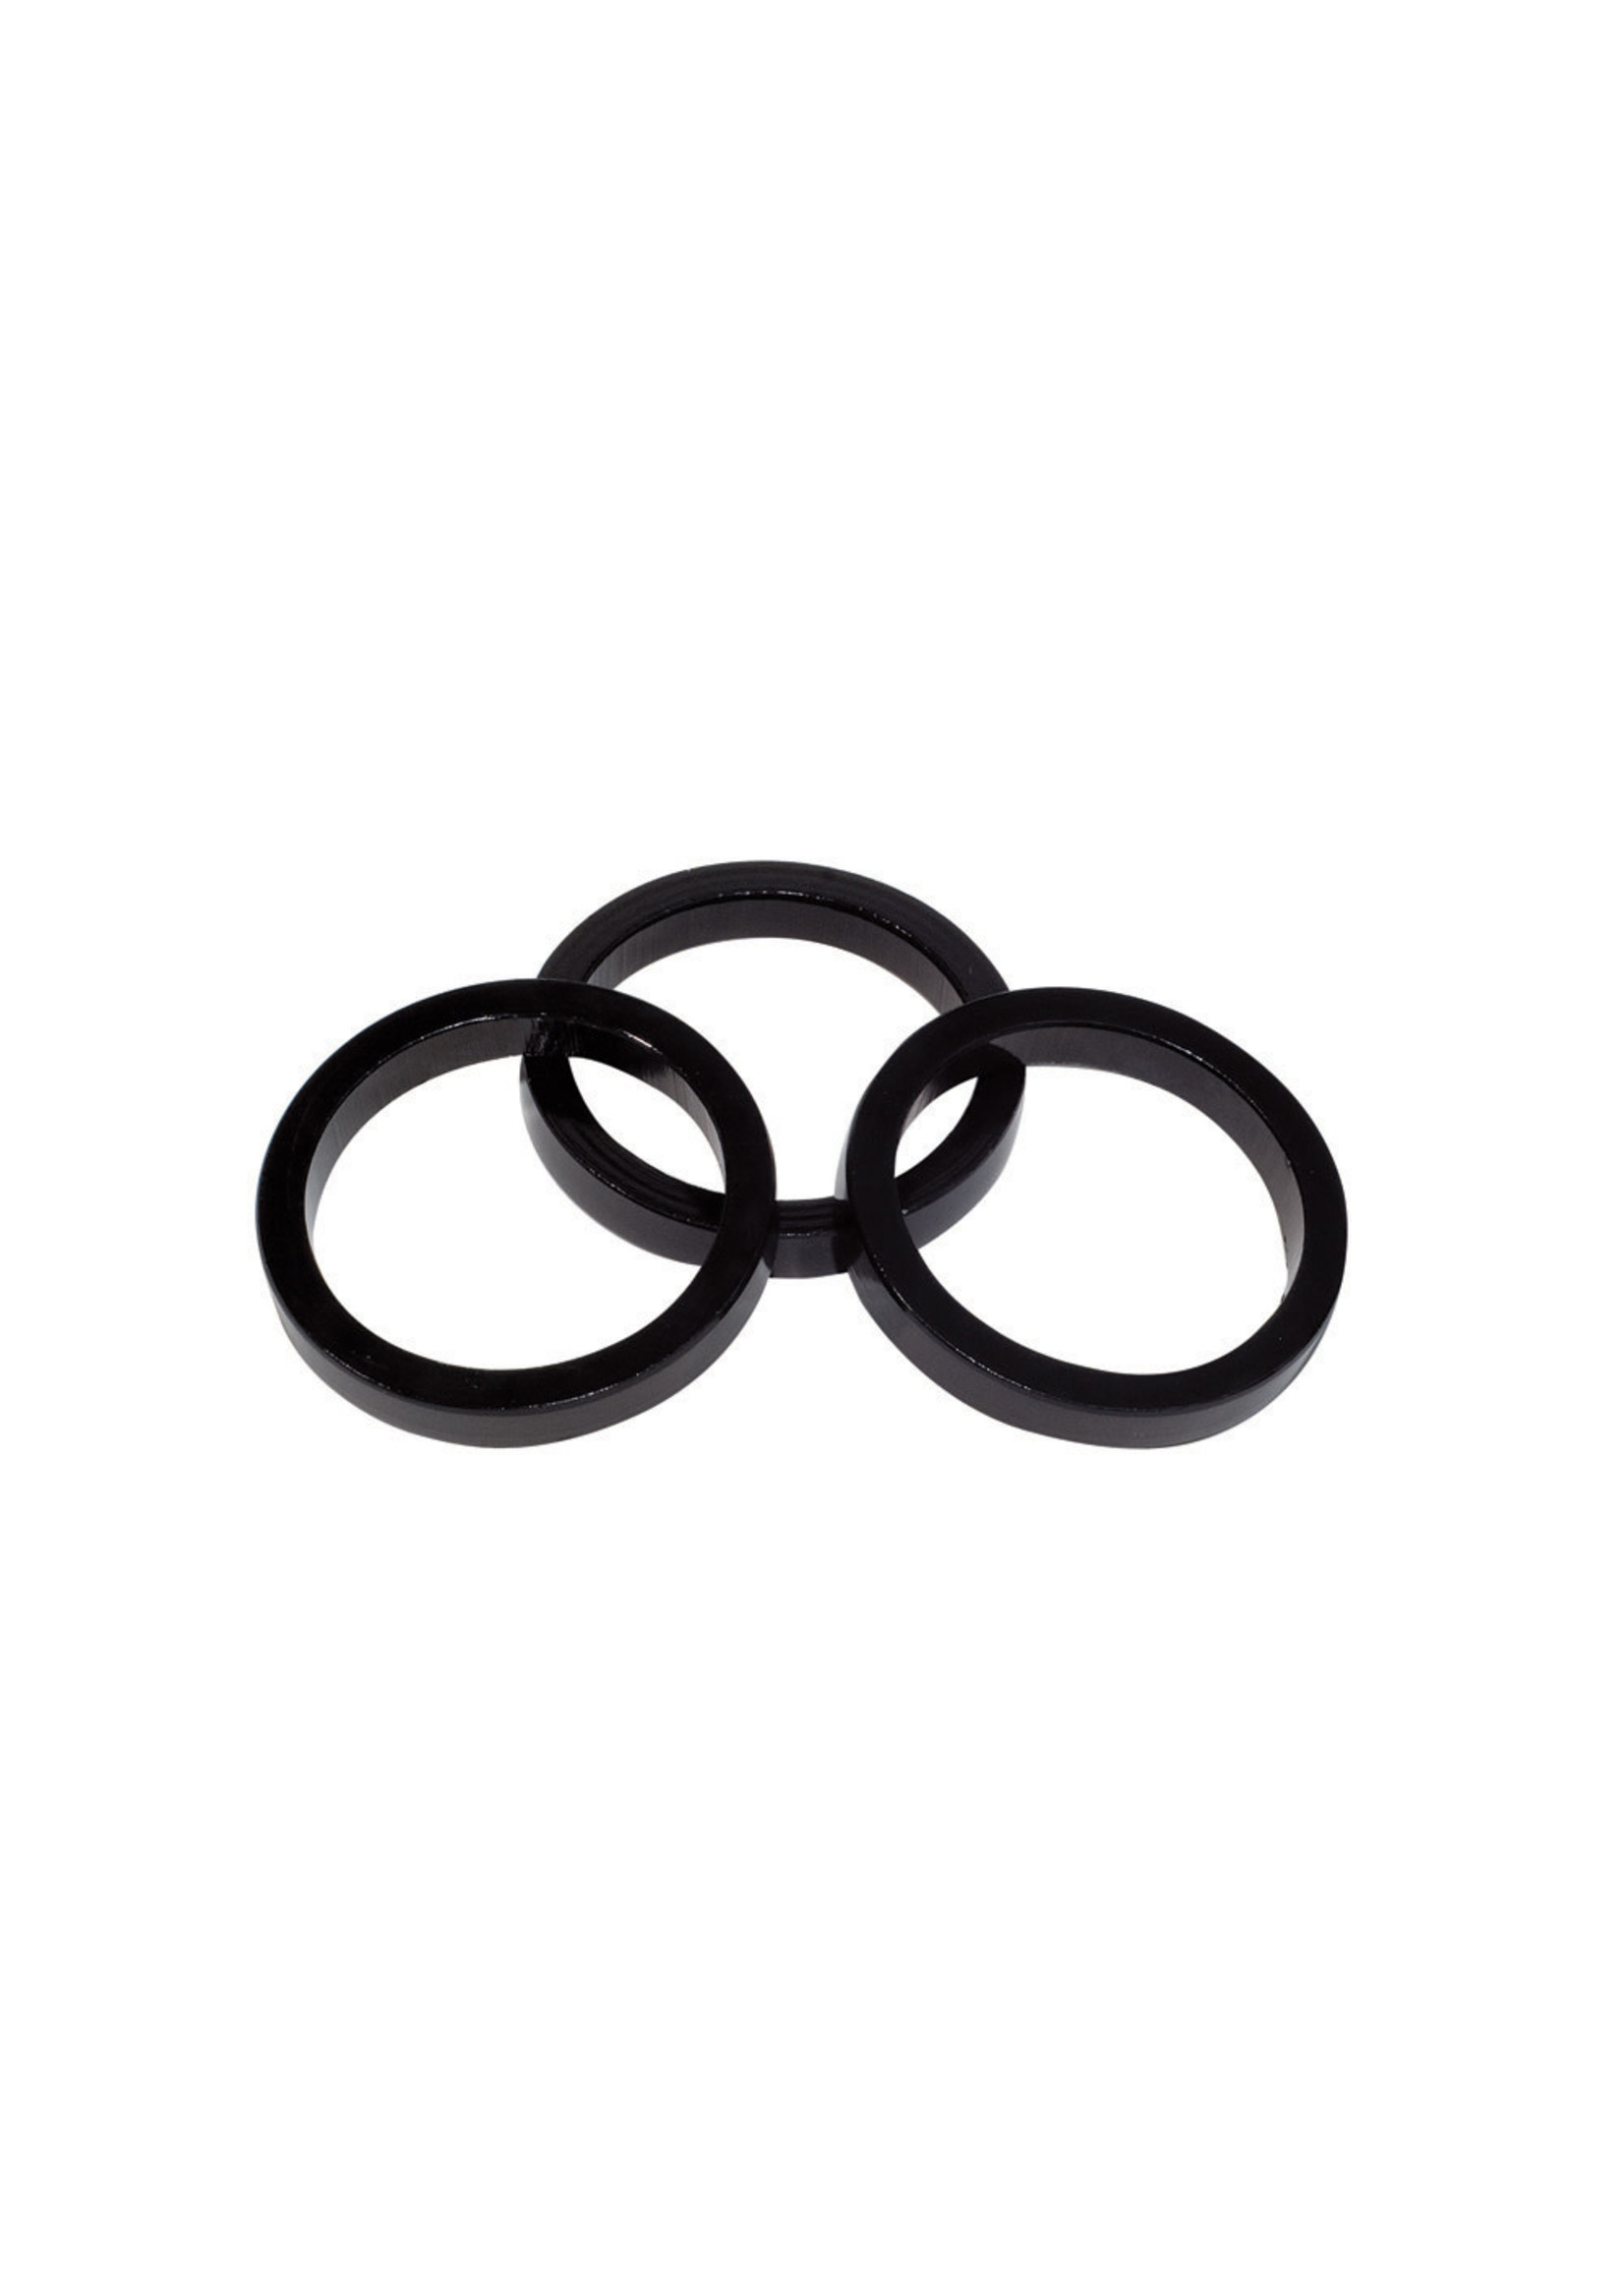 RSP Aheadset Spacer 5mm 1 1/8 (Pack 3)